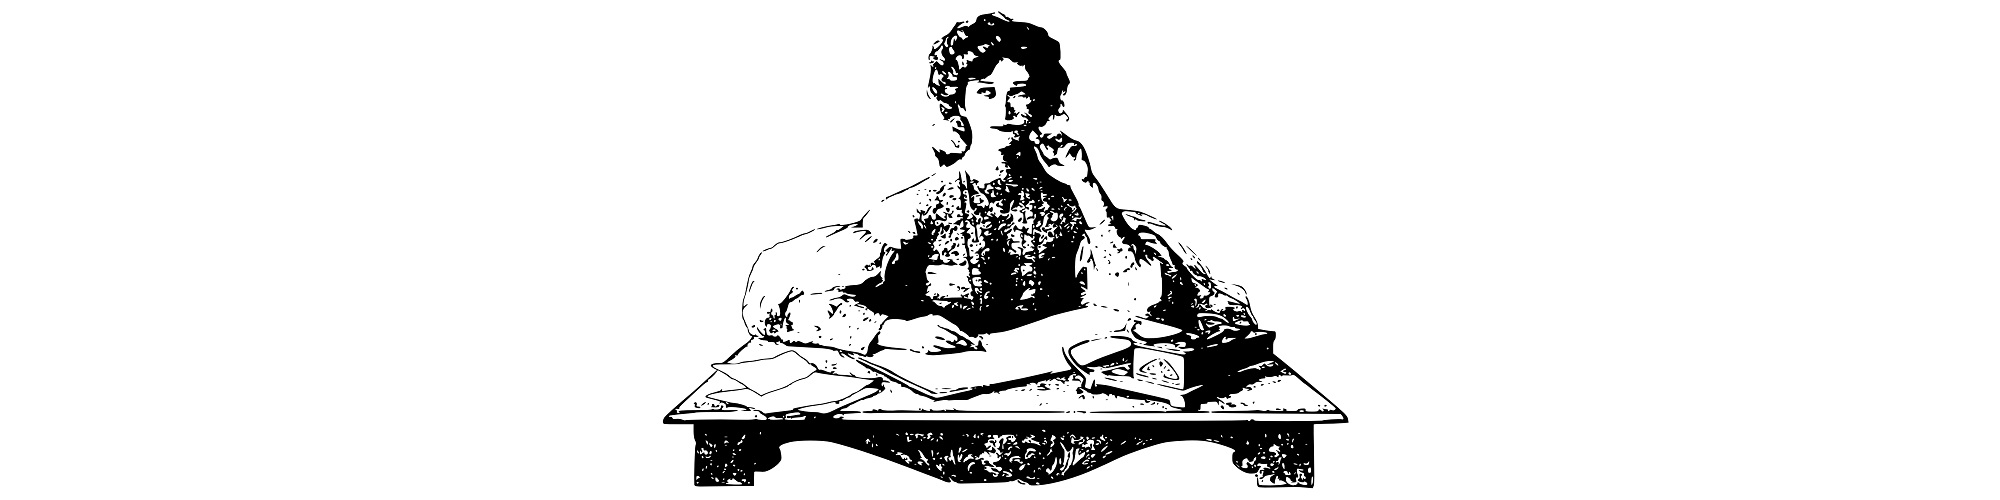 """Woman writing illustration - """"Passion for New Projects"""" Blog"""